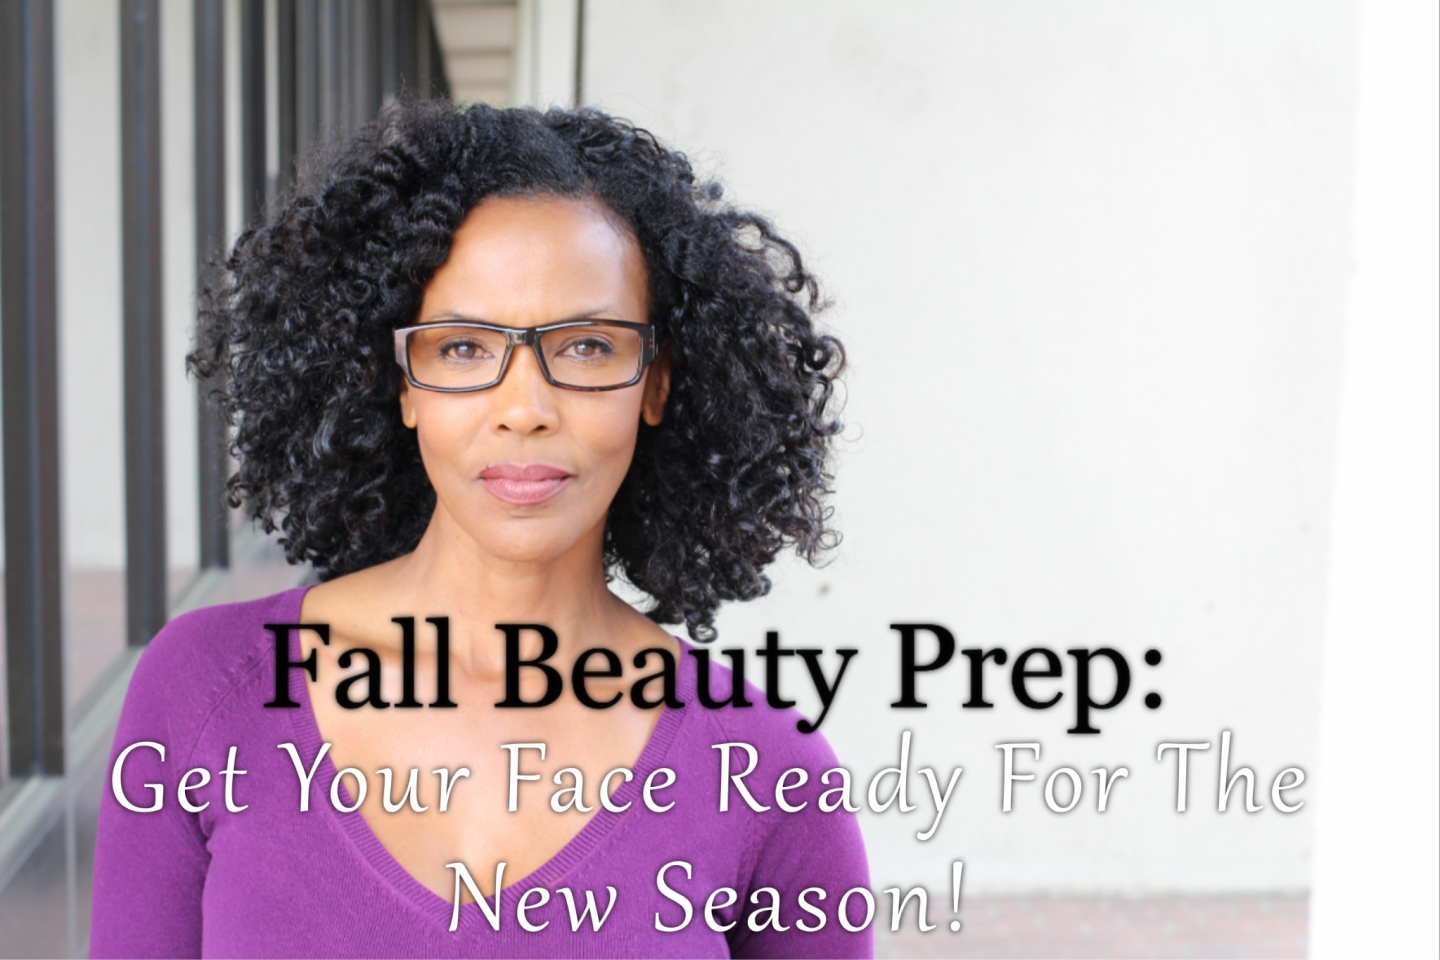 Fall beauty prep is important and there are specific steps needed to ensure your skin does not suffer from summer neglect. Check out our list!